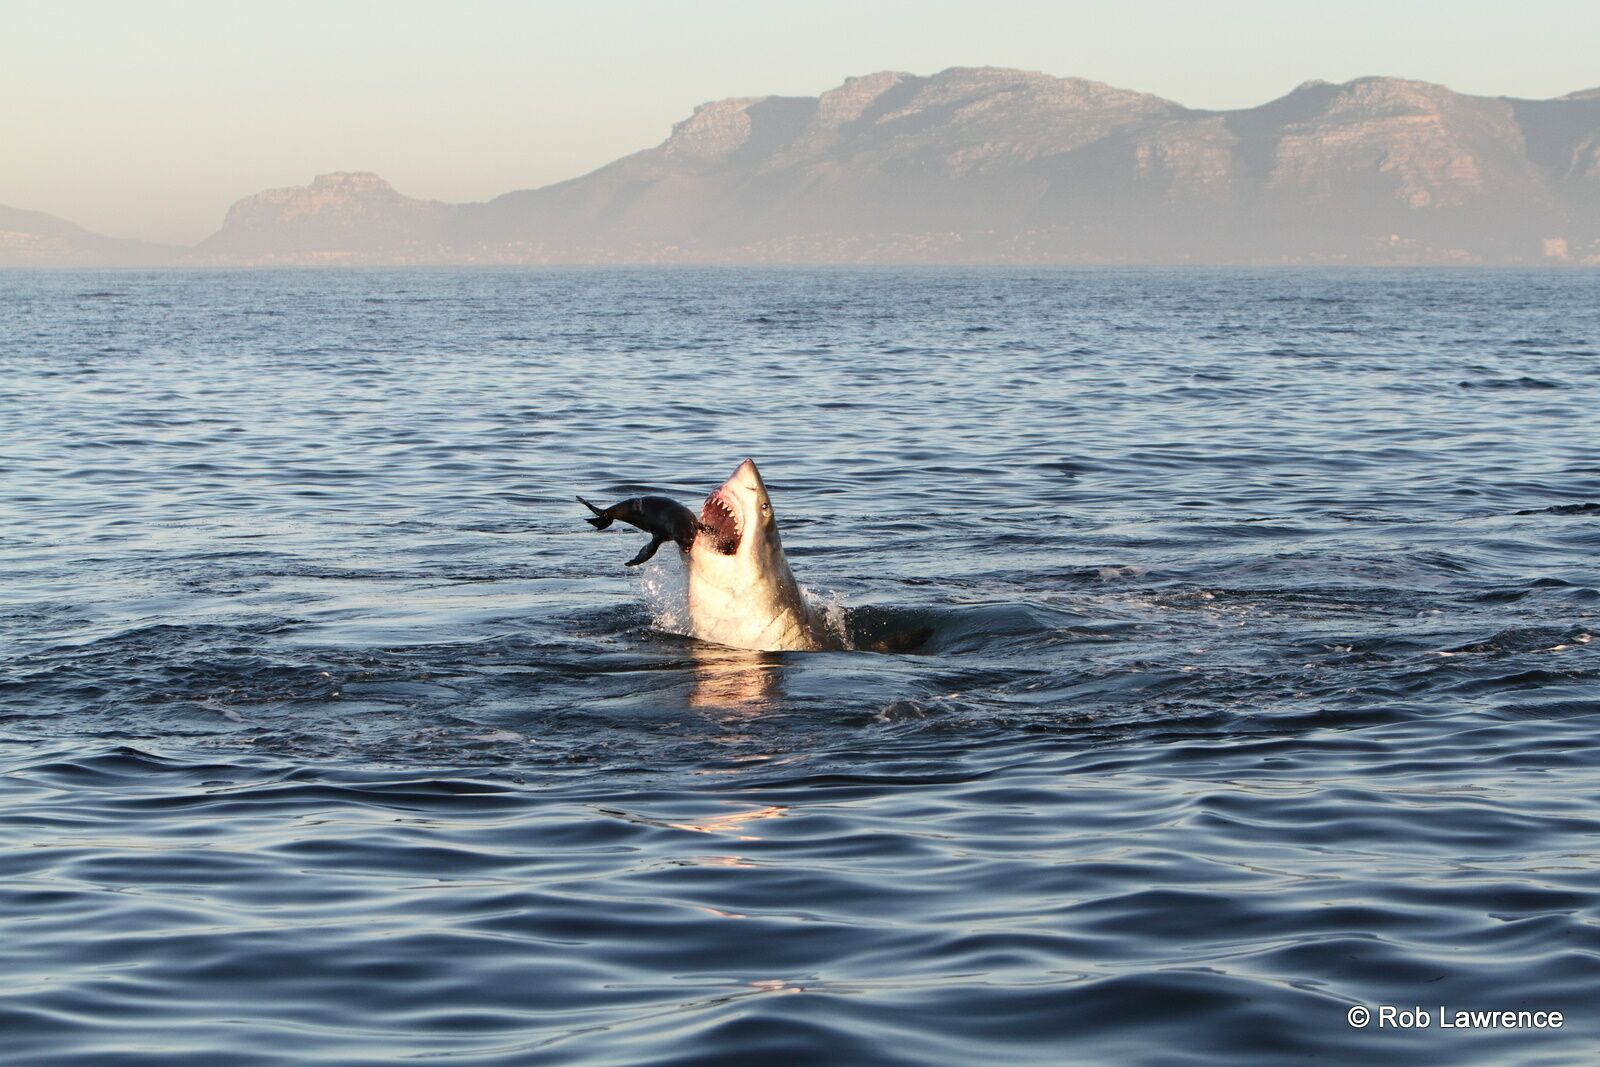 Great Whites will often target lone Cape Fur Seals during predatory events.